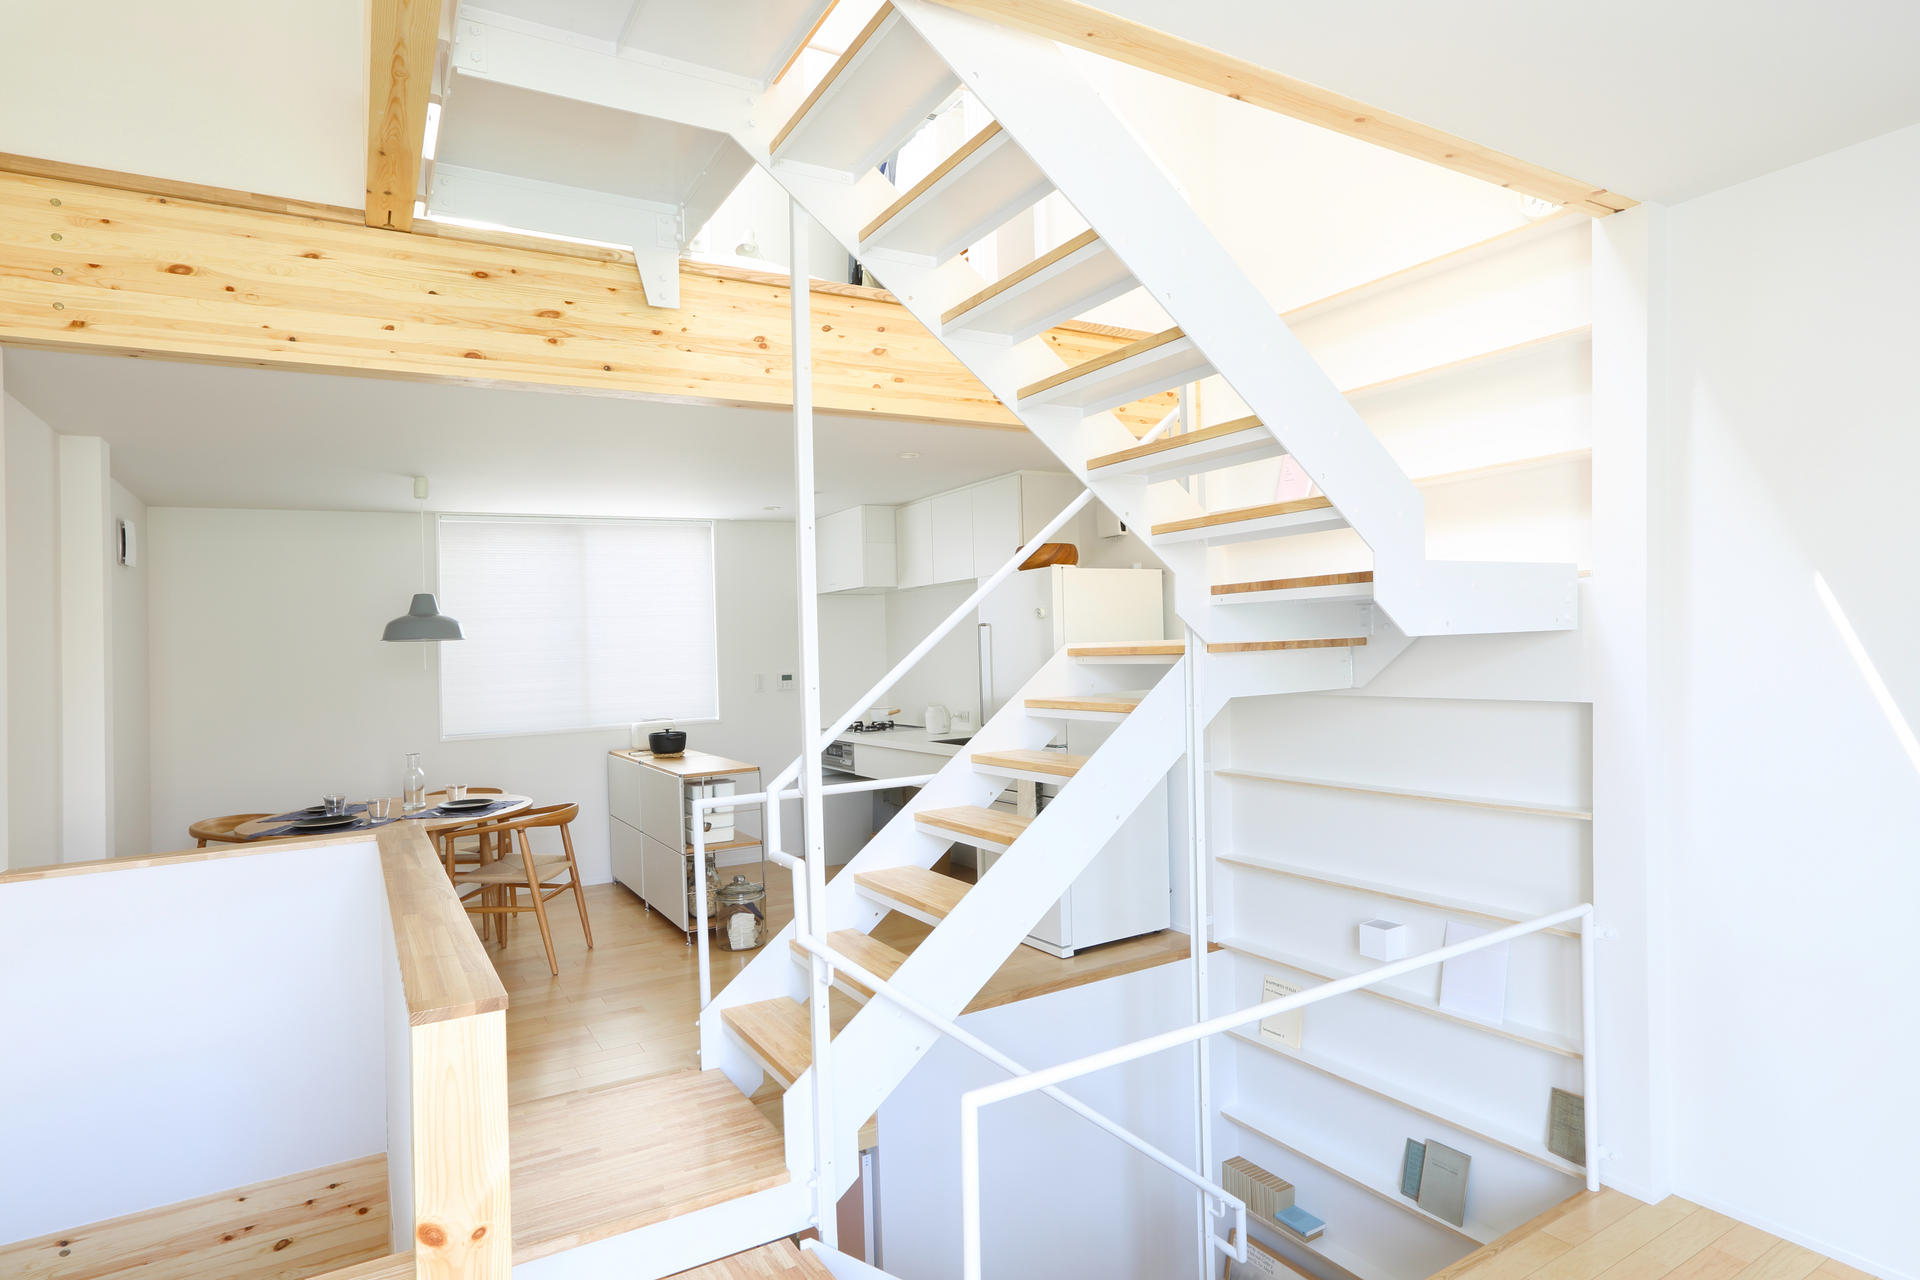 Picture for Features, Interiors. Muji House, for Charmaine Credit: courtesy of Muji Country: Japan